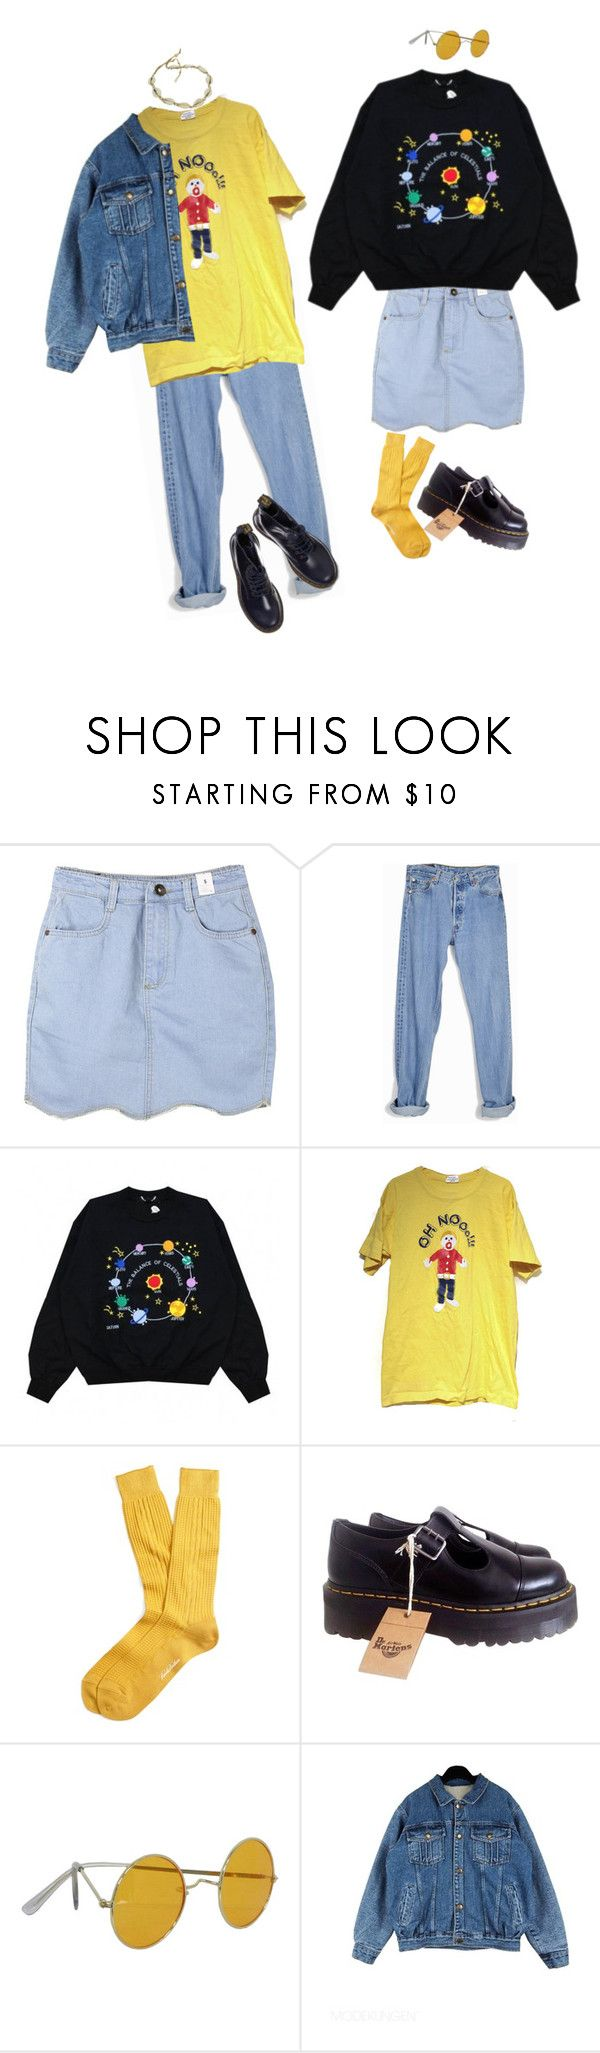 """""""We're together"""" by linneminne ❤ liked on Polyvore featuring Levi's, Brooks Brothers and Dr. Martens"""